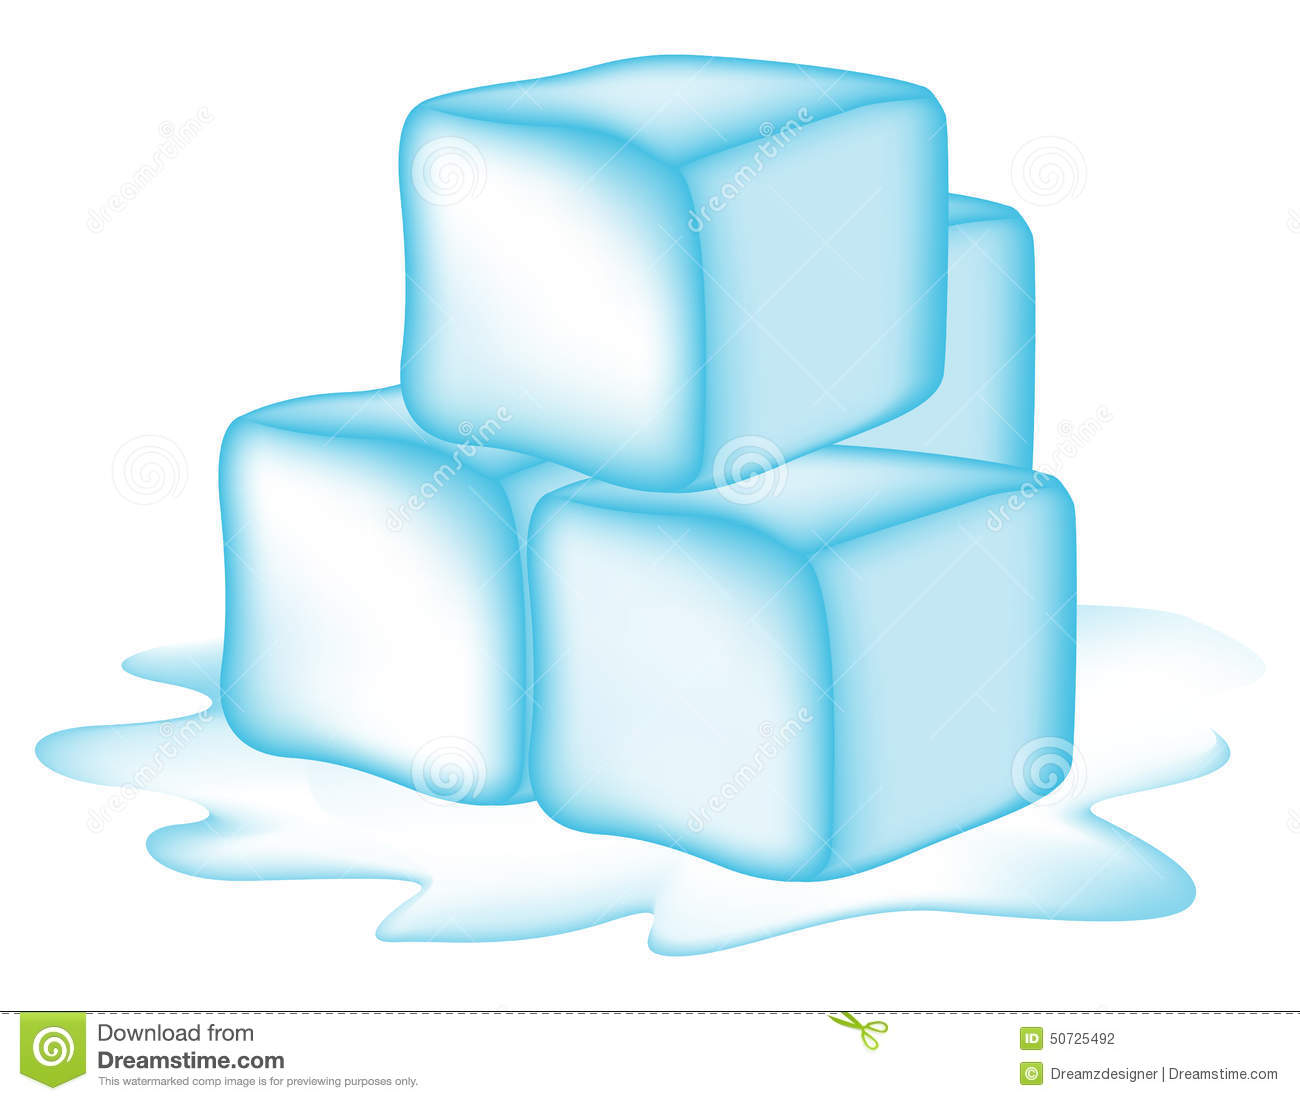 Block of ice clipart clip art black and white download Ice Block Stock Illustrations – 1,288 Ice Block Stock ... clip art black and white download